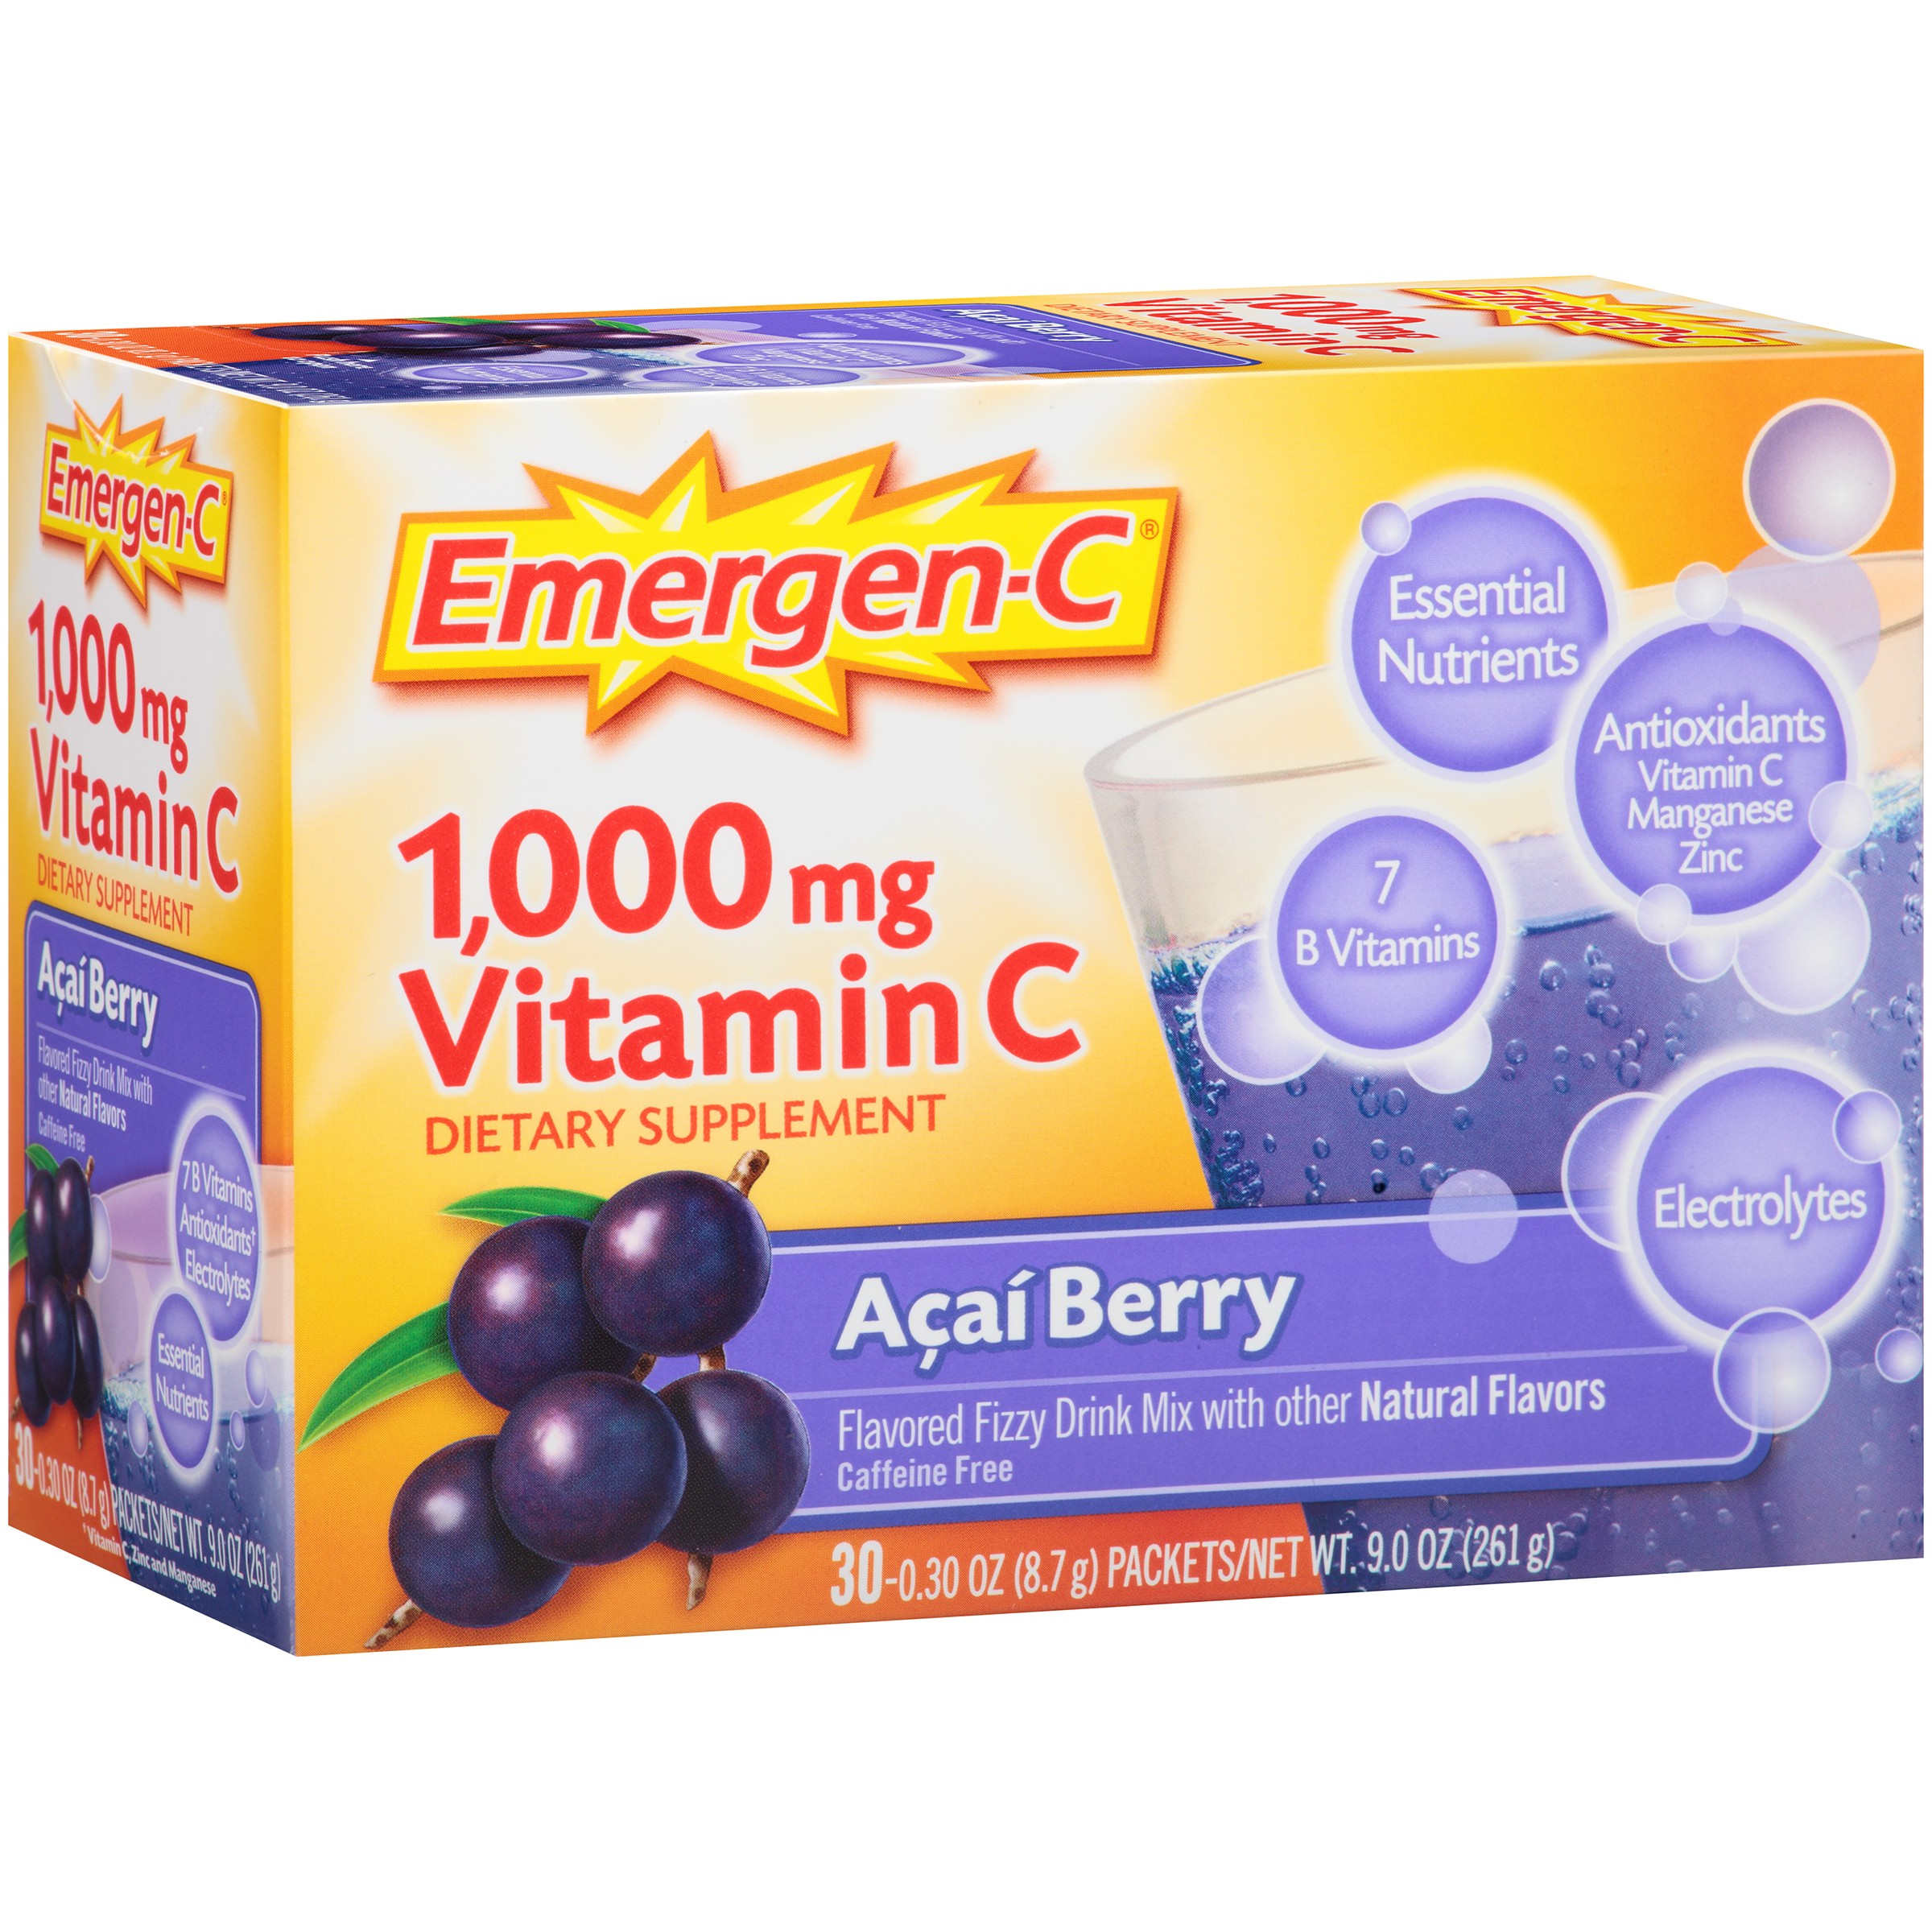 Emergen-C Acai Berry Packets Dietary Supplement, .3 oz